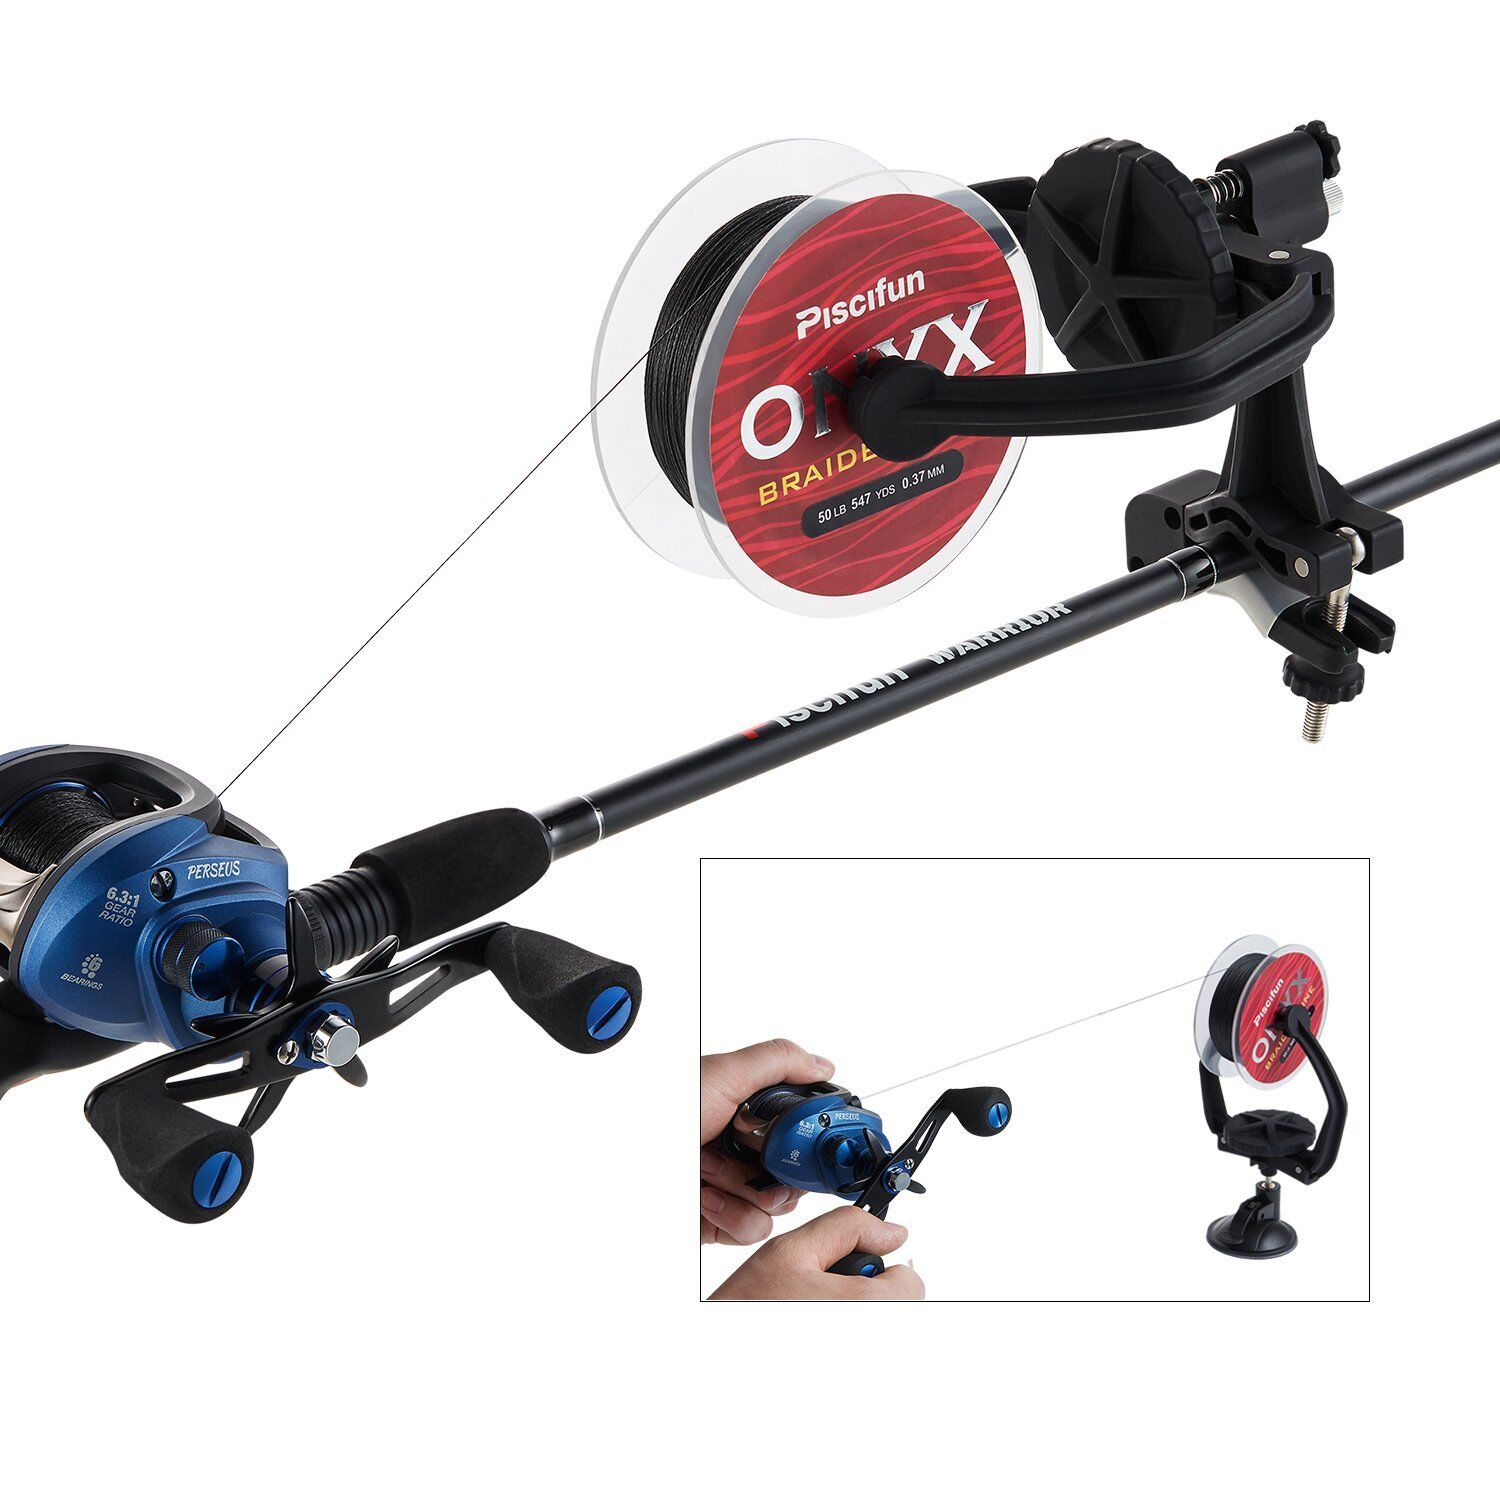 Piscifun New Fishing Line Spooler Portable Spooling Station System  Fishing Re...  the best online store offer